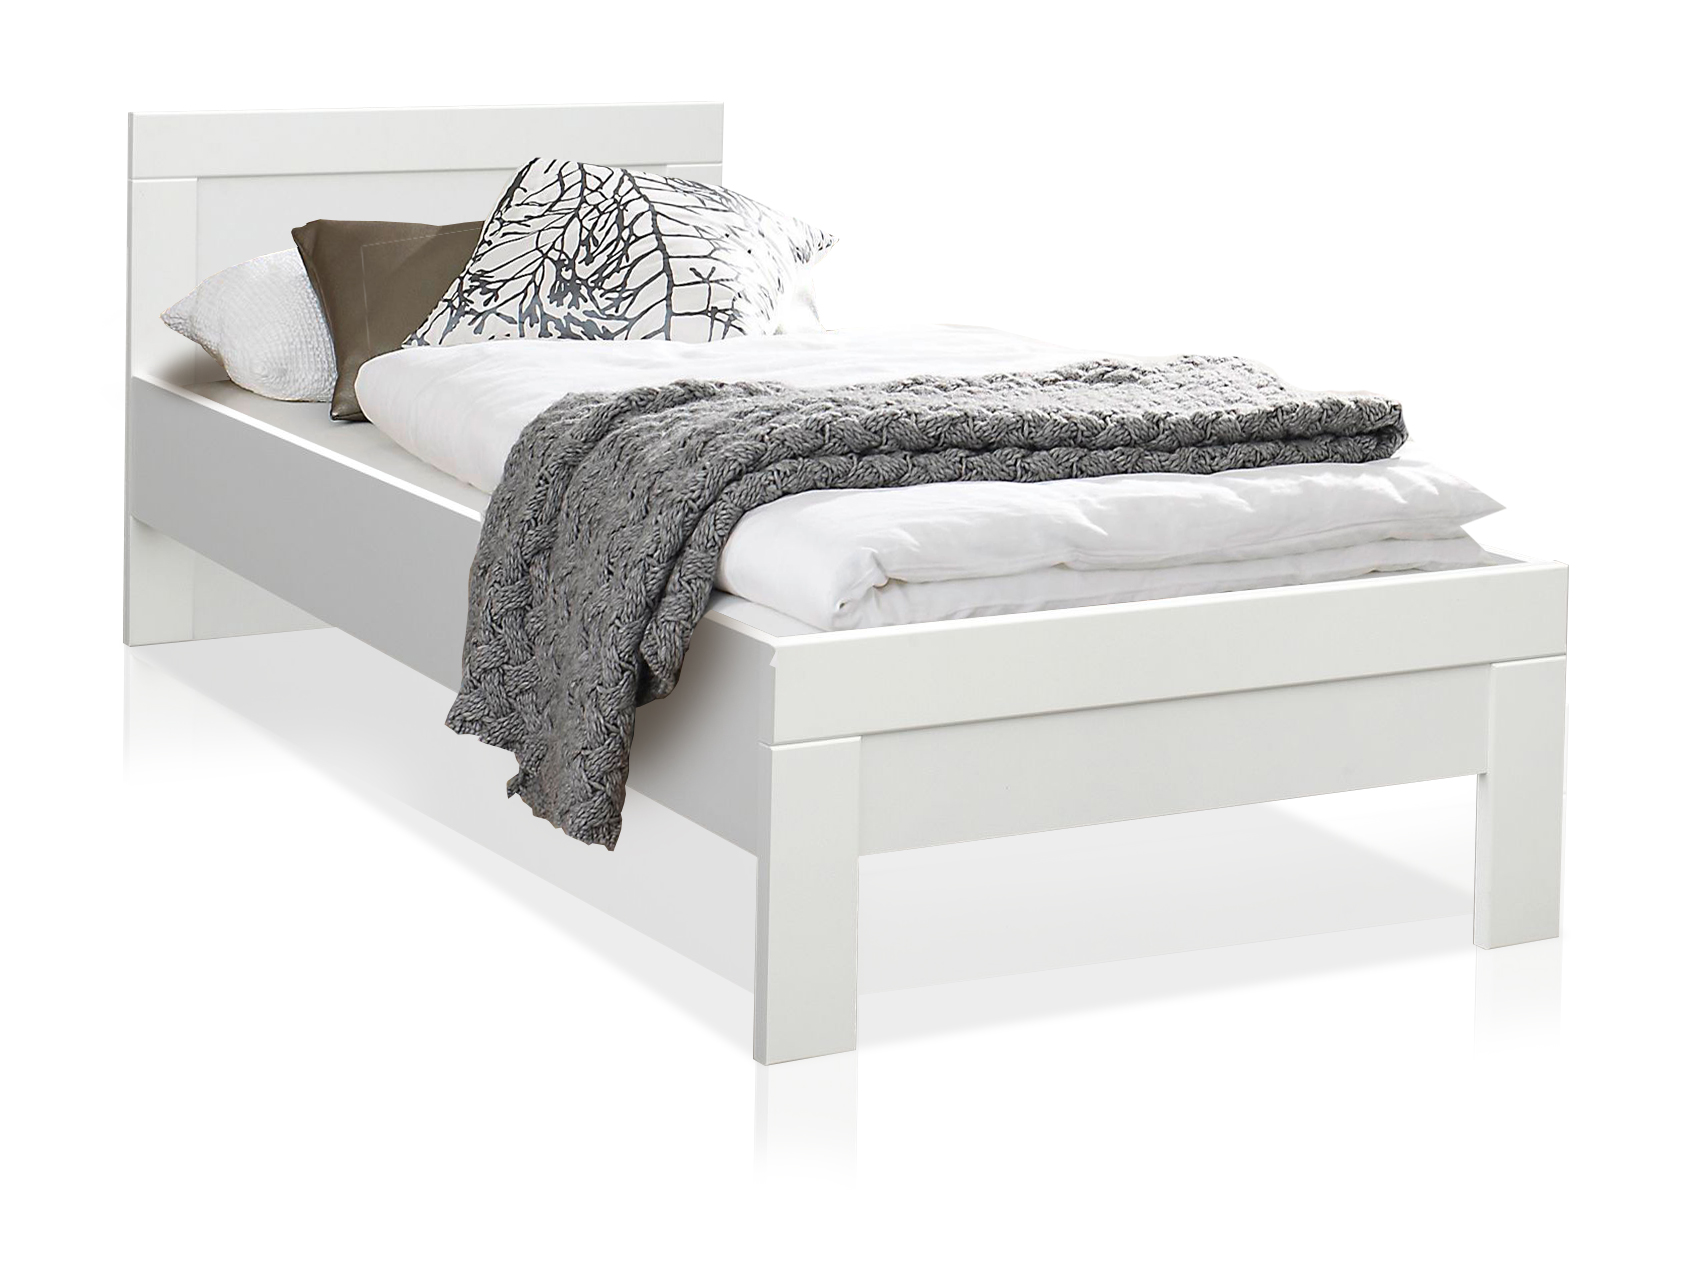 snowy jugendbett weiss inklusive kopfteil 90x 200 cm. Black Bedroom Furniture Sets. Home Design Ideas